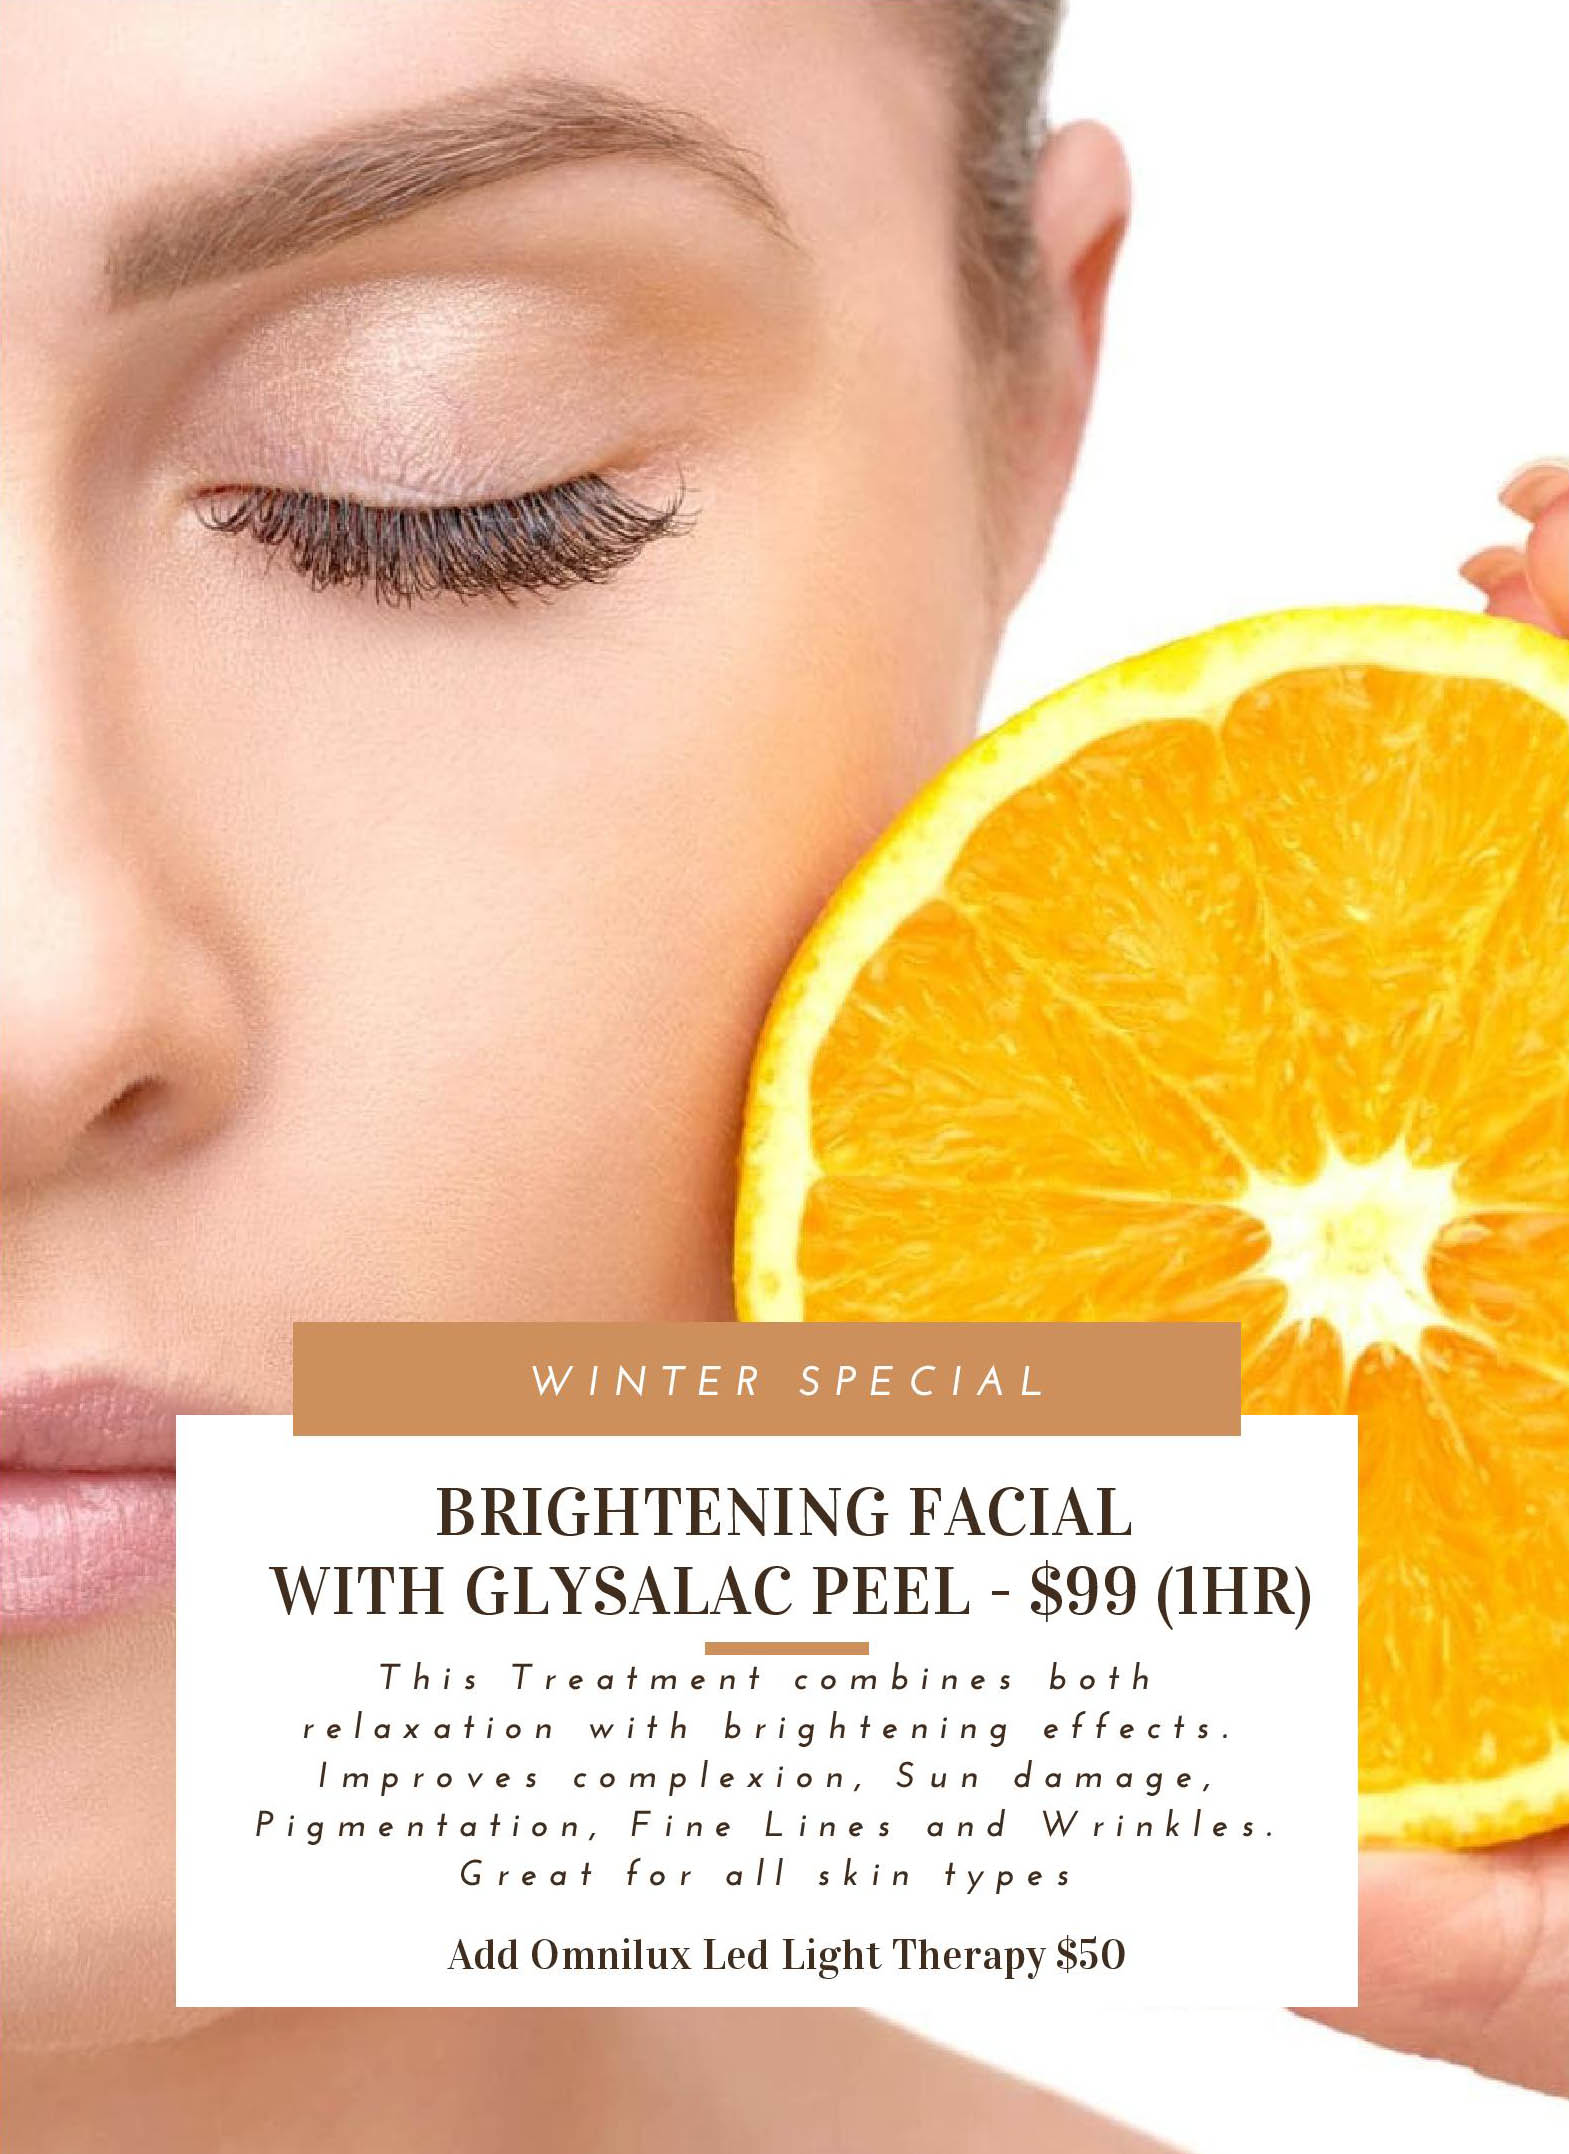 Brightening Facial with Glysalac Peel 99 per hour